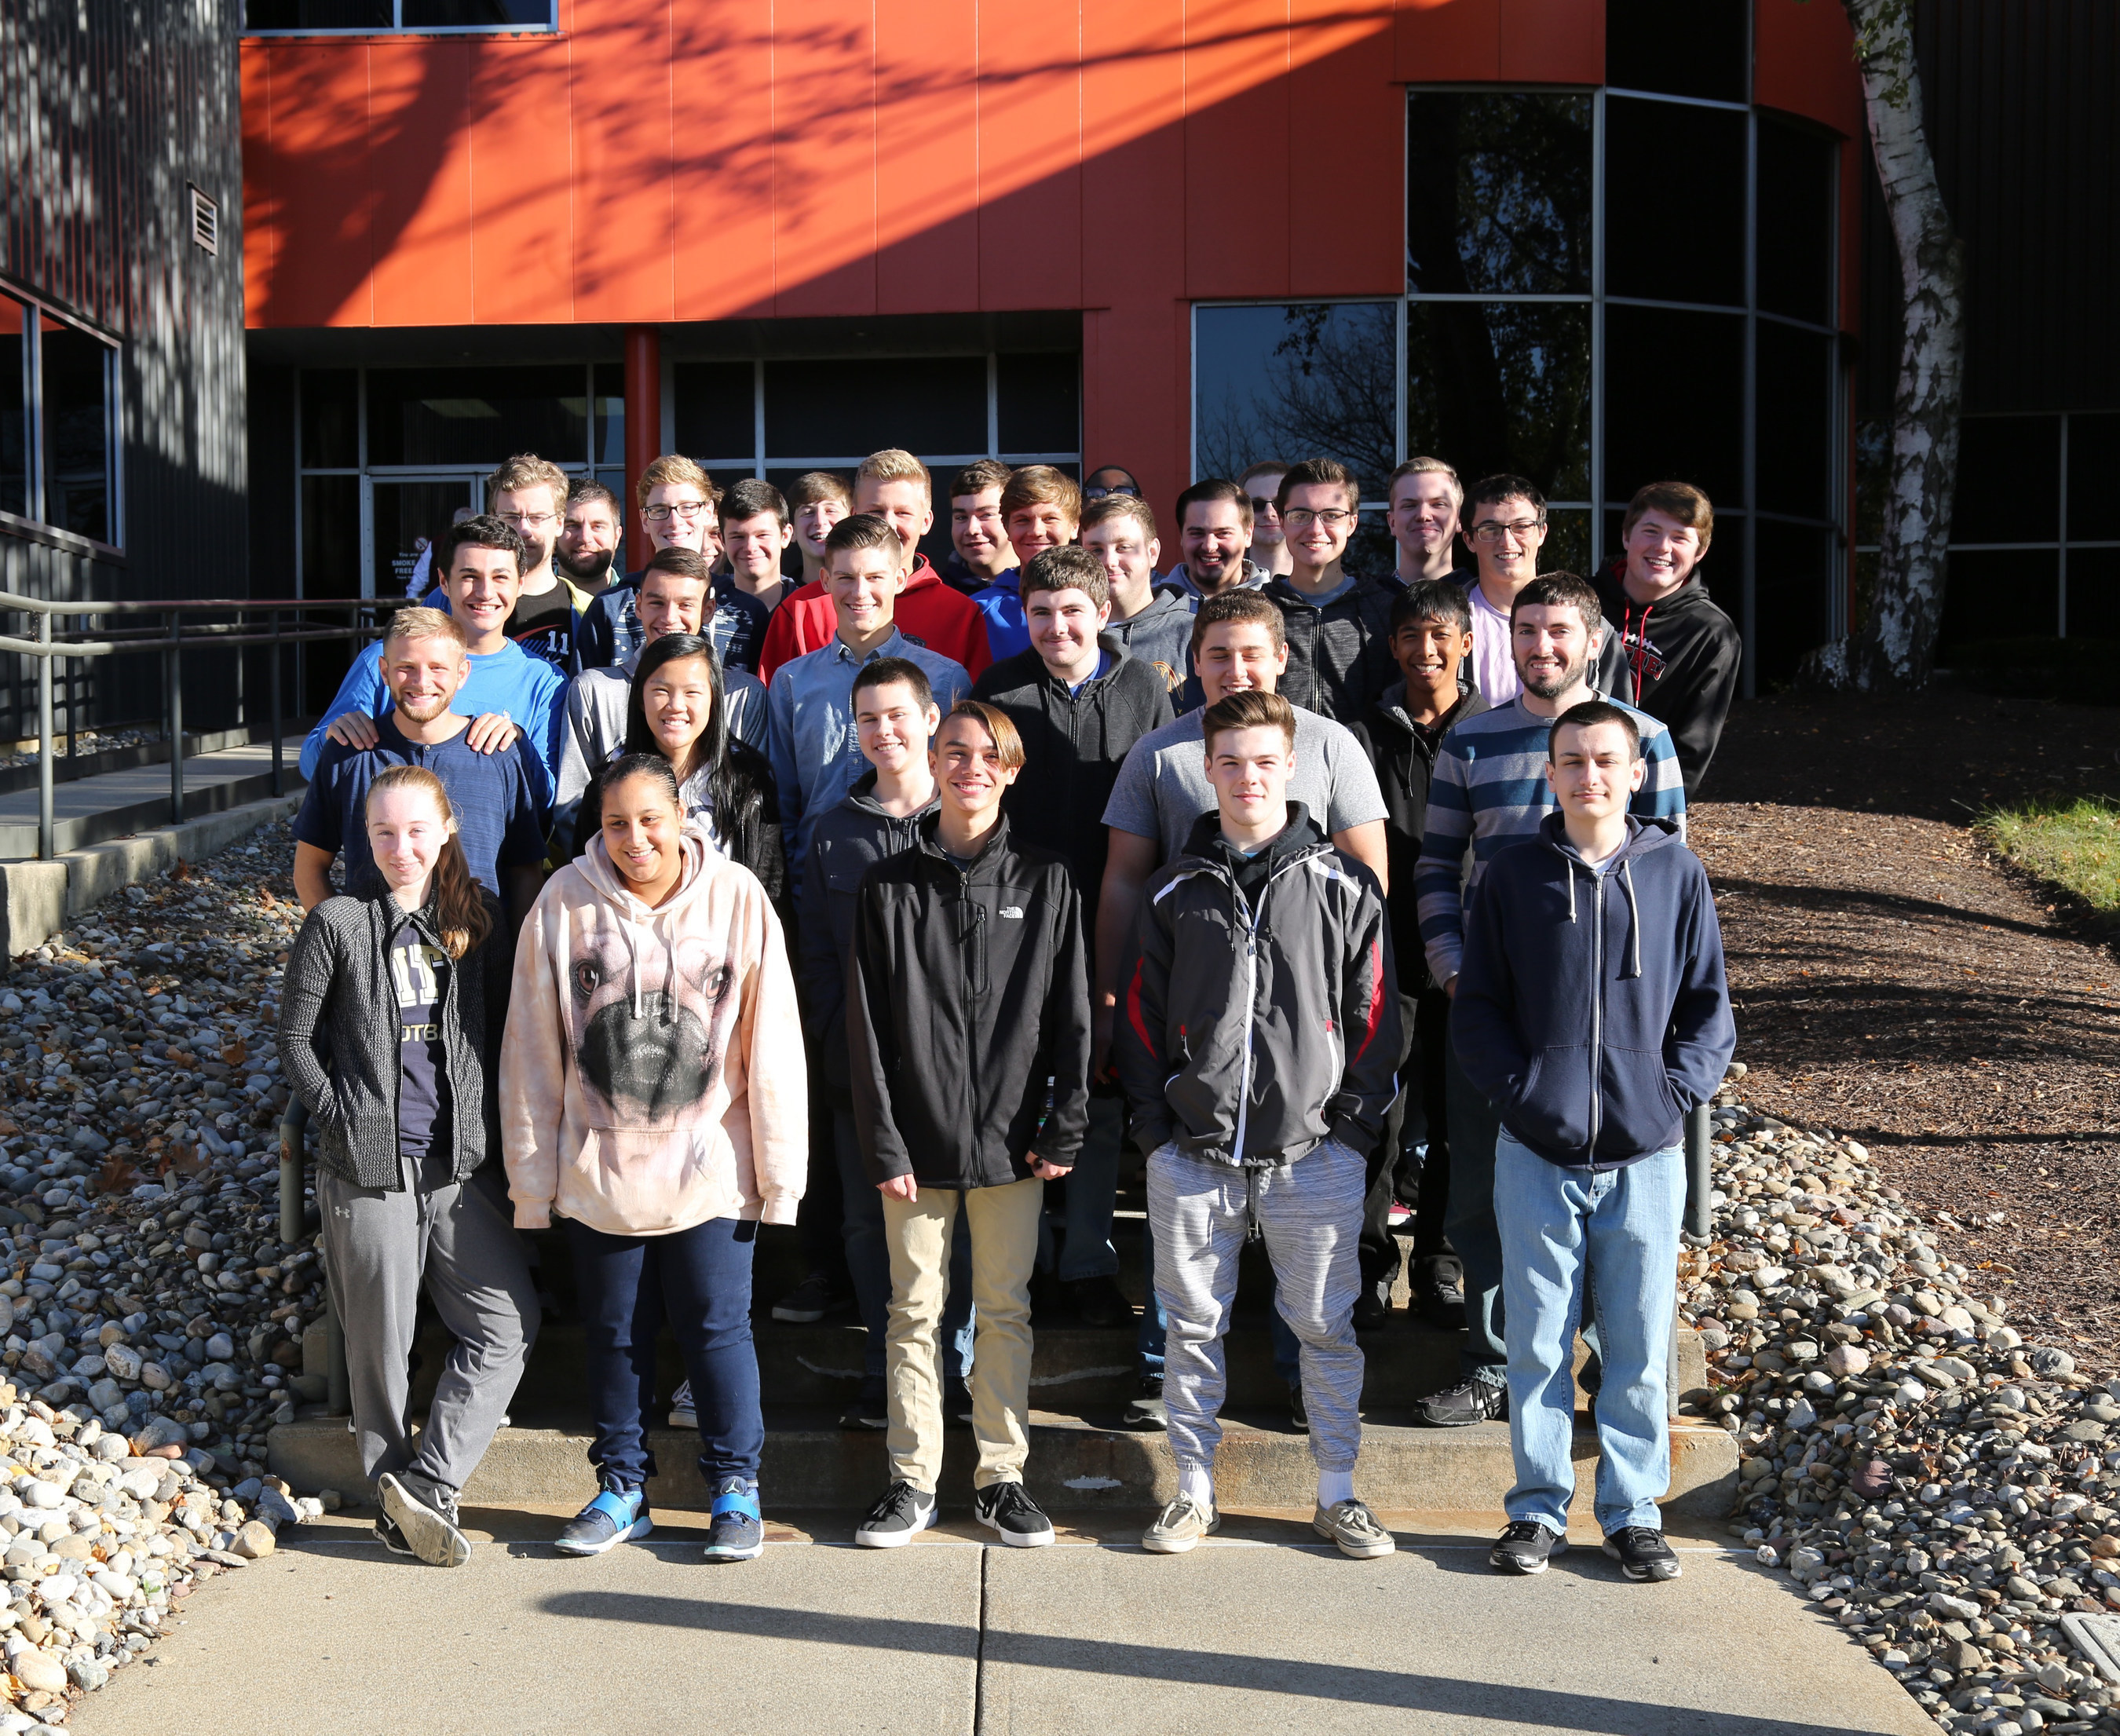 Today, over 30 students from Saucon Valley High School visited Victaulic, Crayola and Follett to gain an understanding of the engineering, science, math and technology skills used to solve real world business challenges.